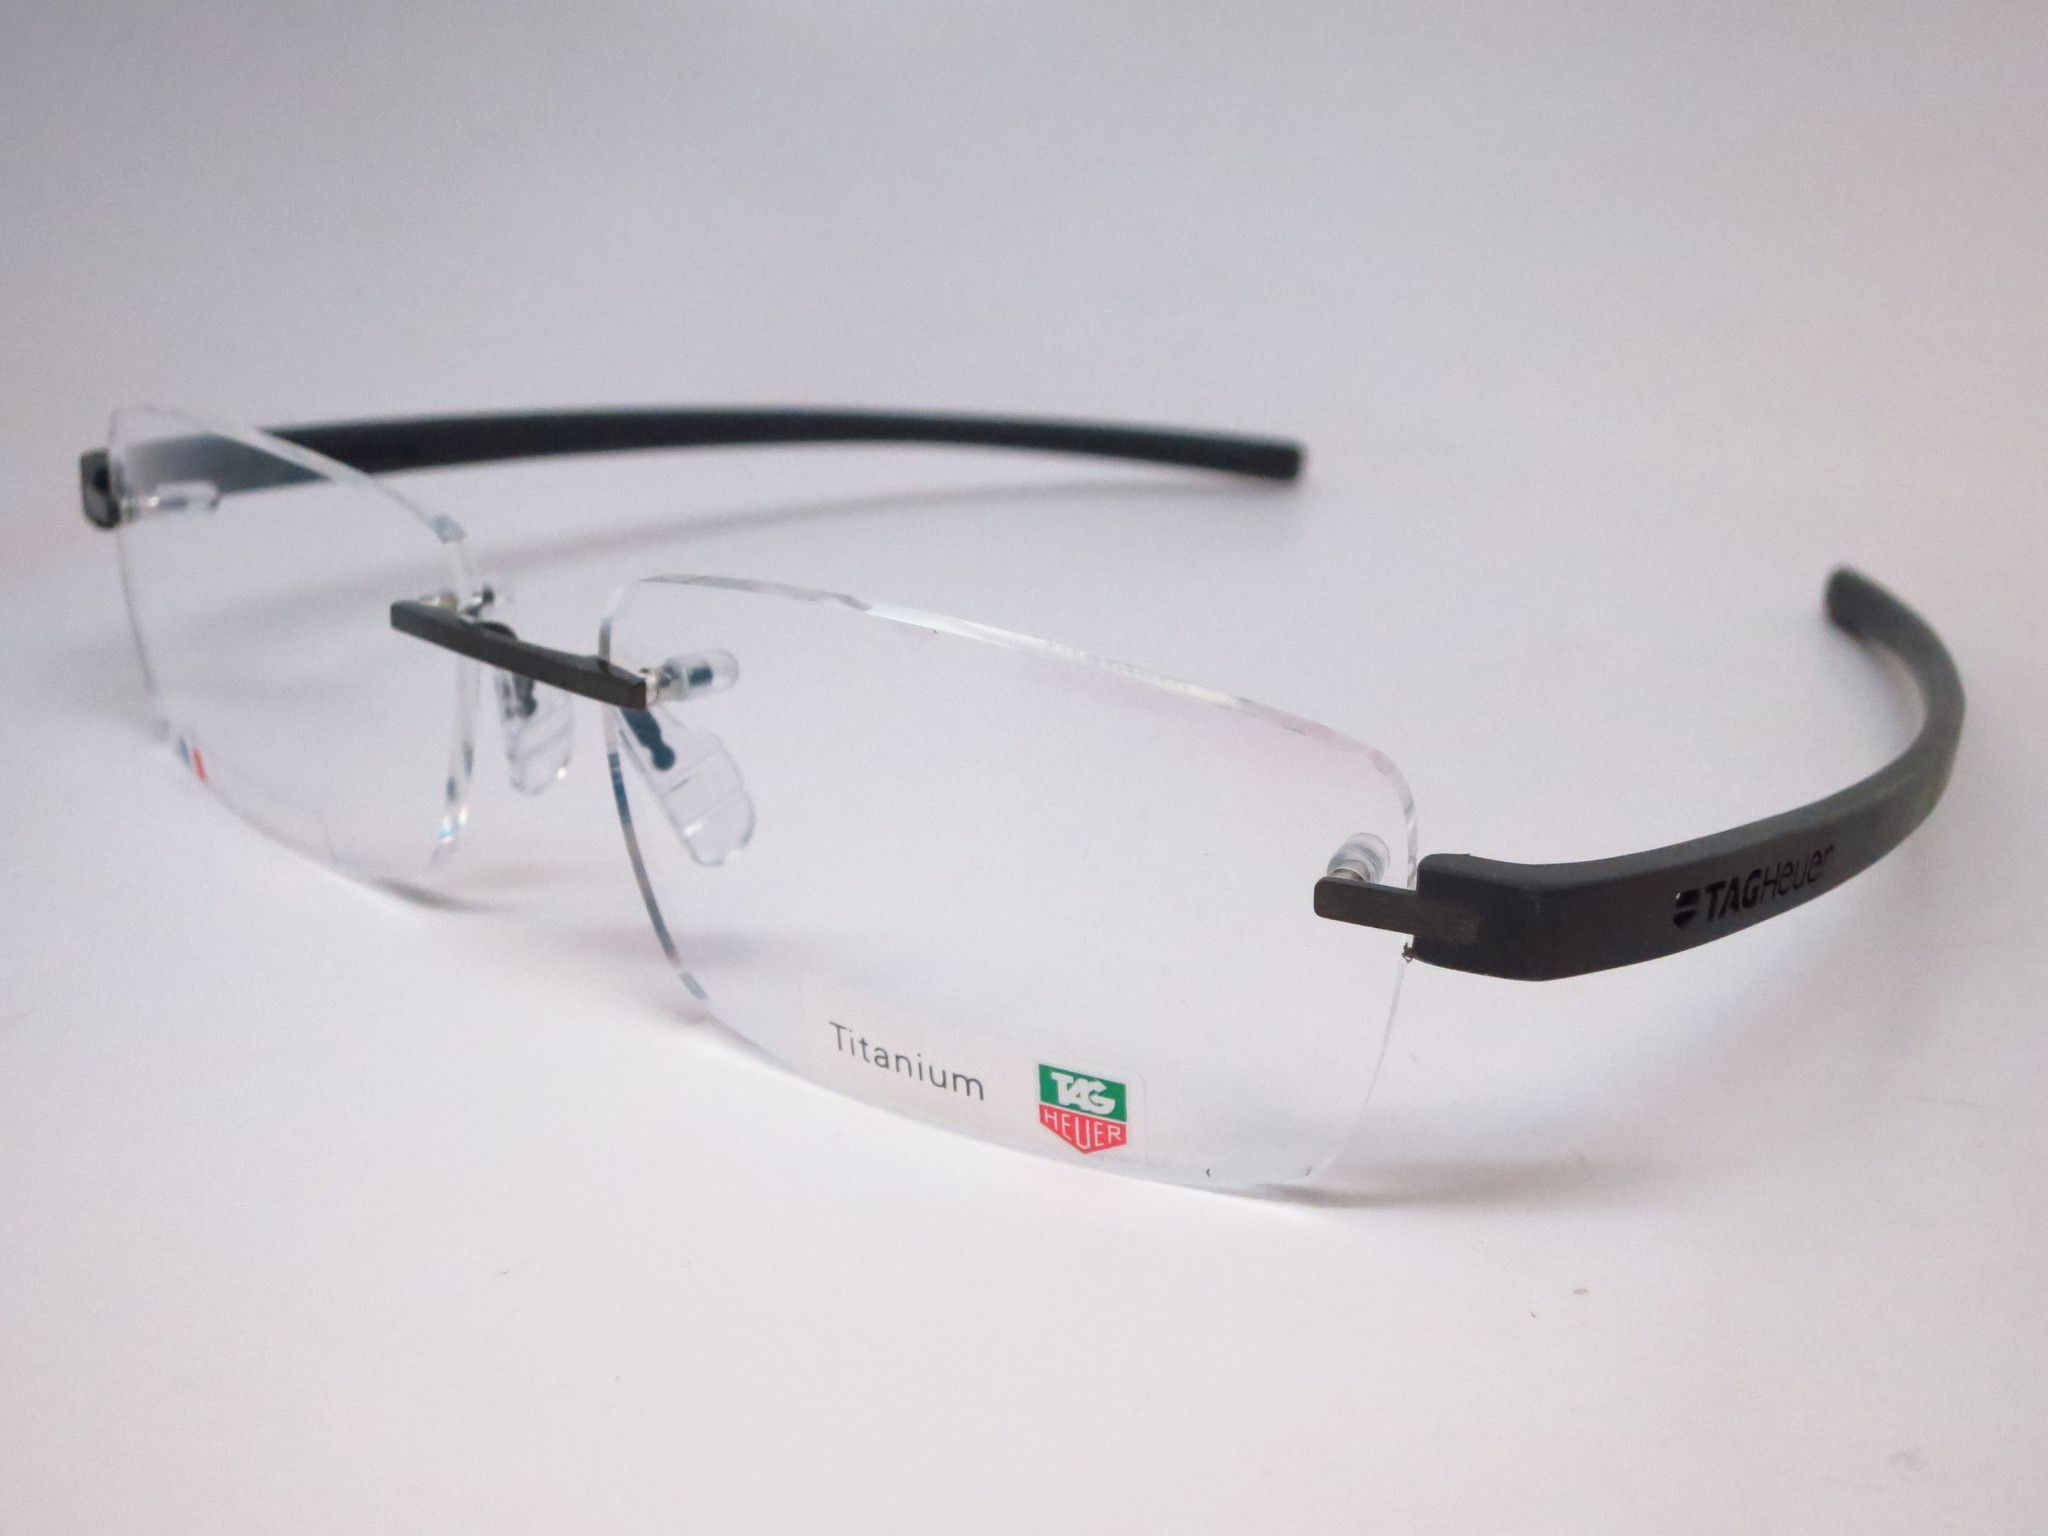 6459d8ad3d8b Features of the Tag Heuer TH 3942 Eyeglasses - Rimless lenses means you can  keep the current lens shape or choose another shape to suit you, the  options are ...